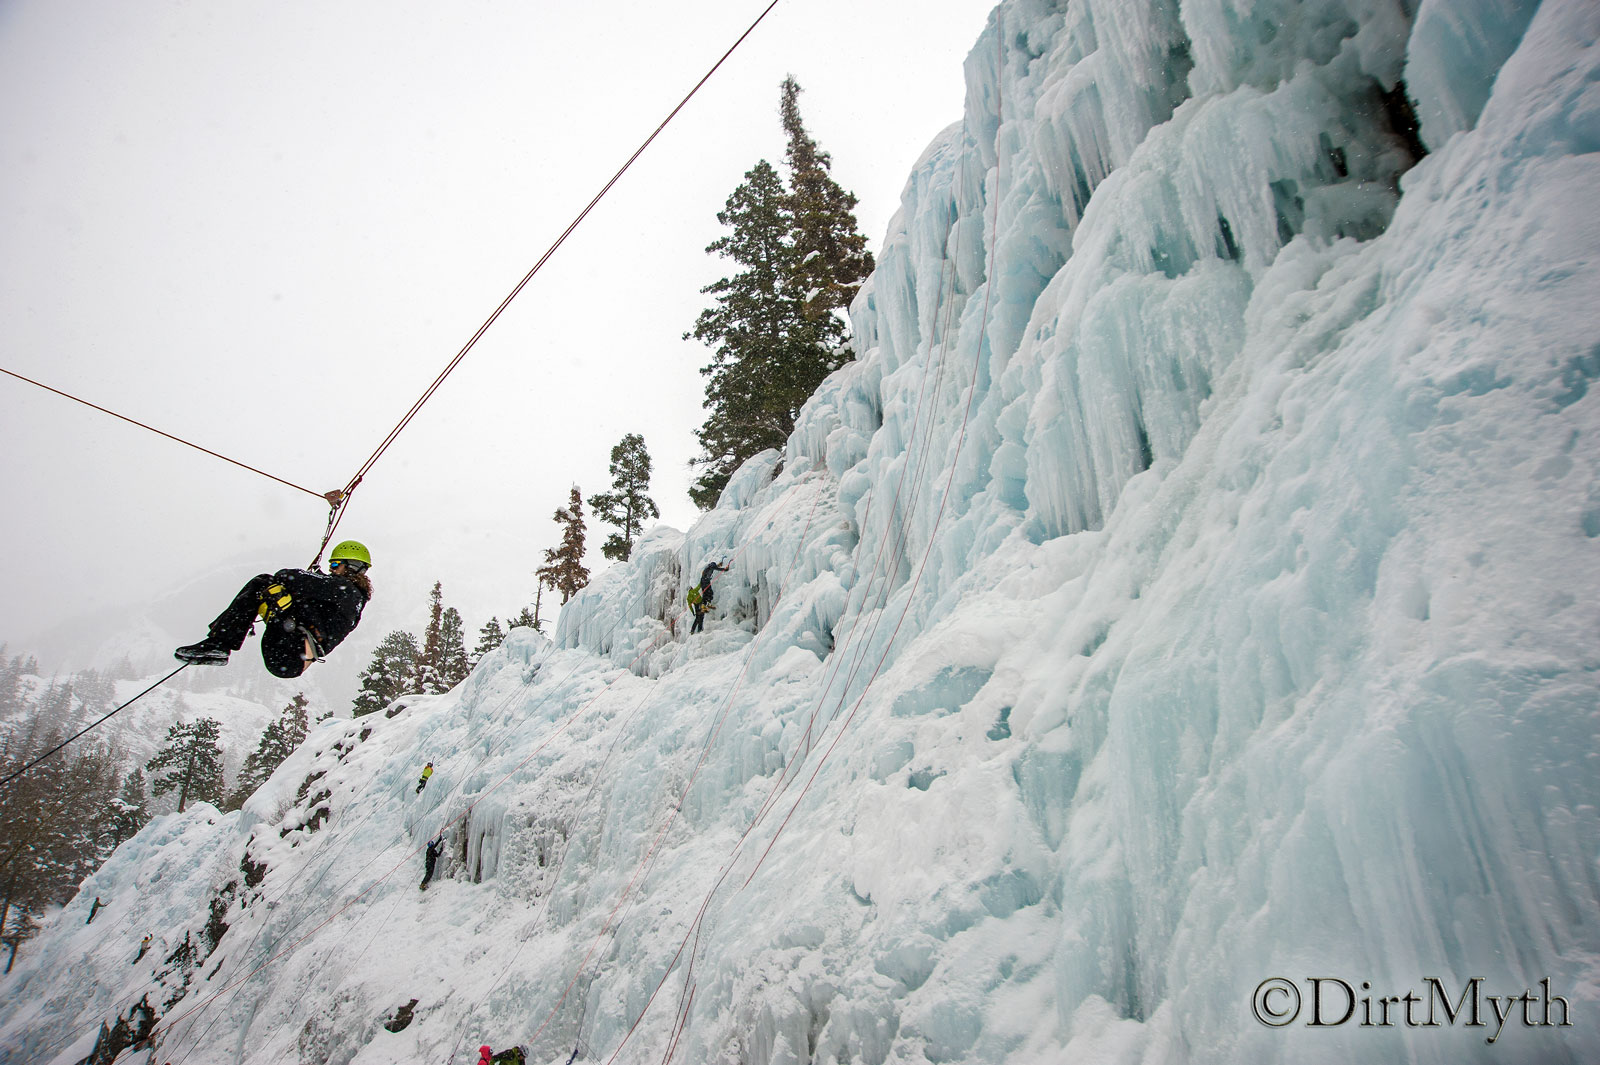 A person zips down an icy mountain with the help of a rope and pulley system.